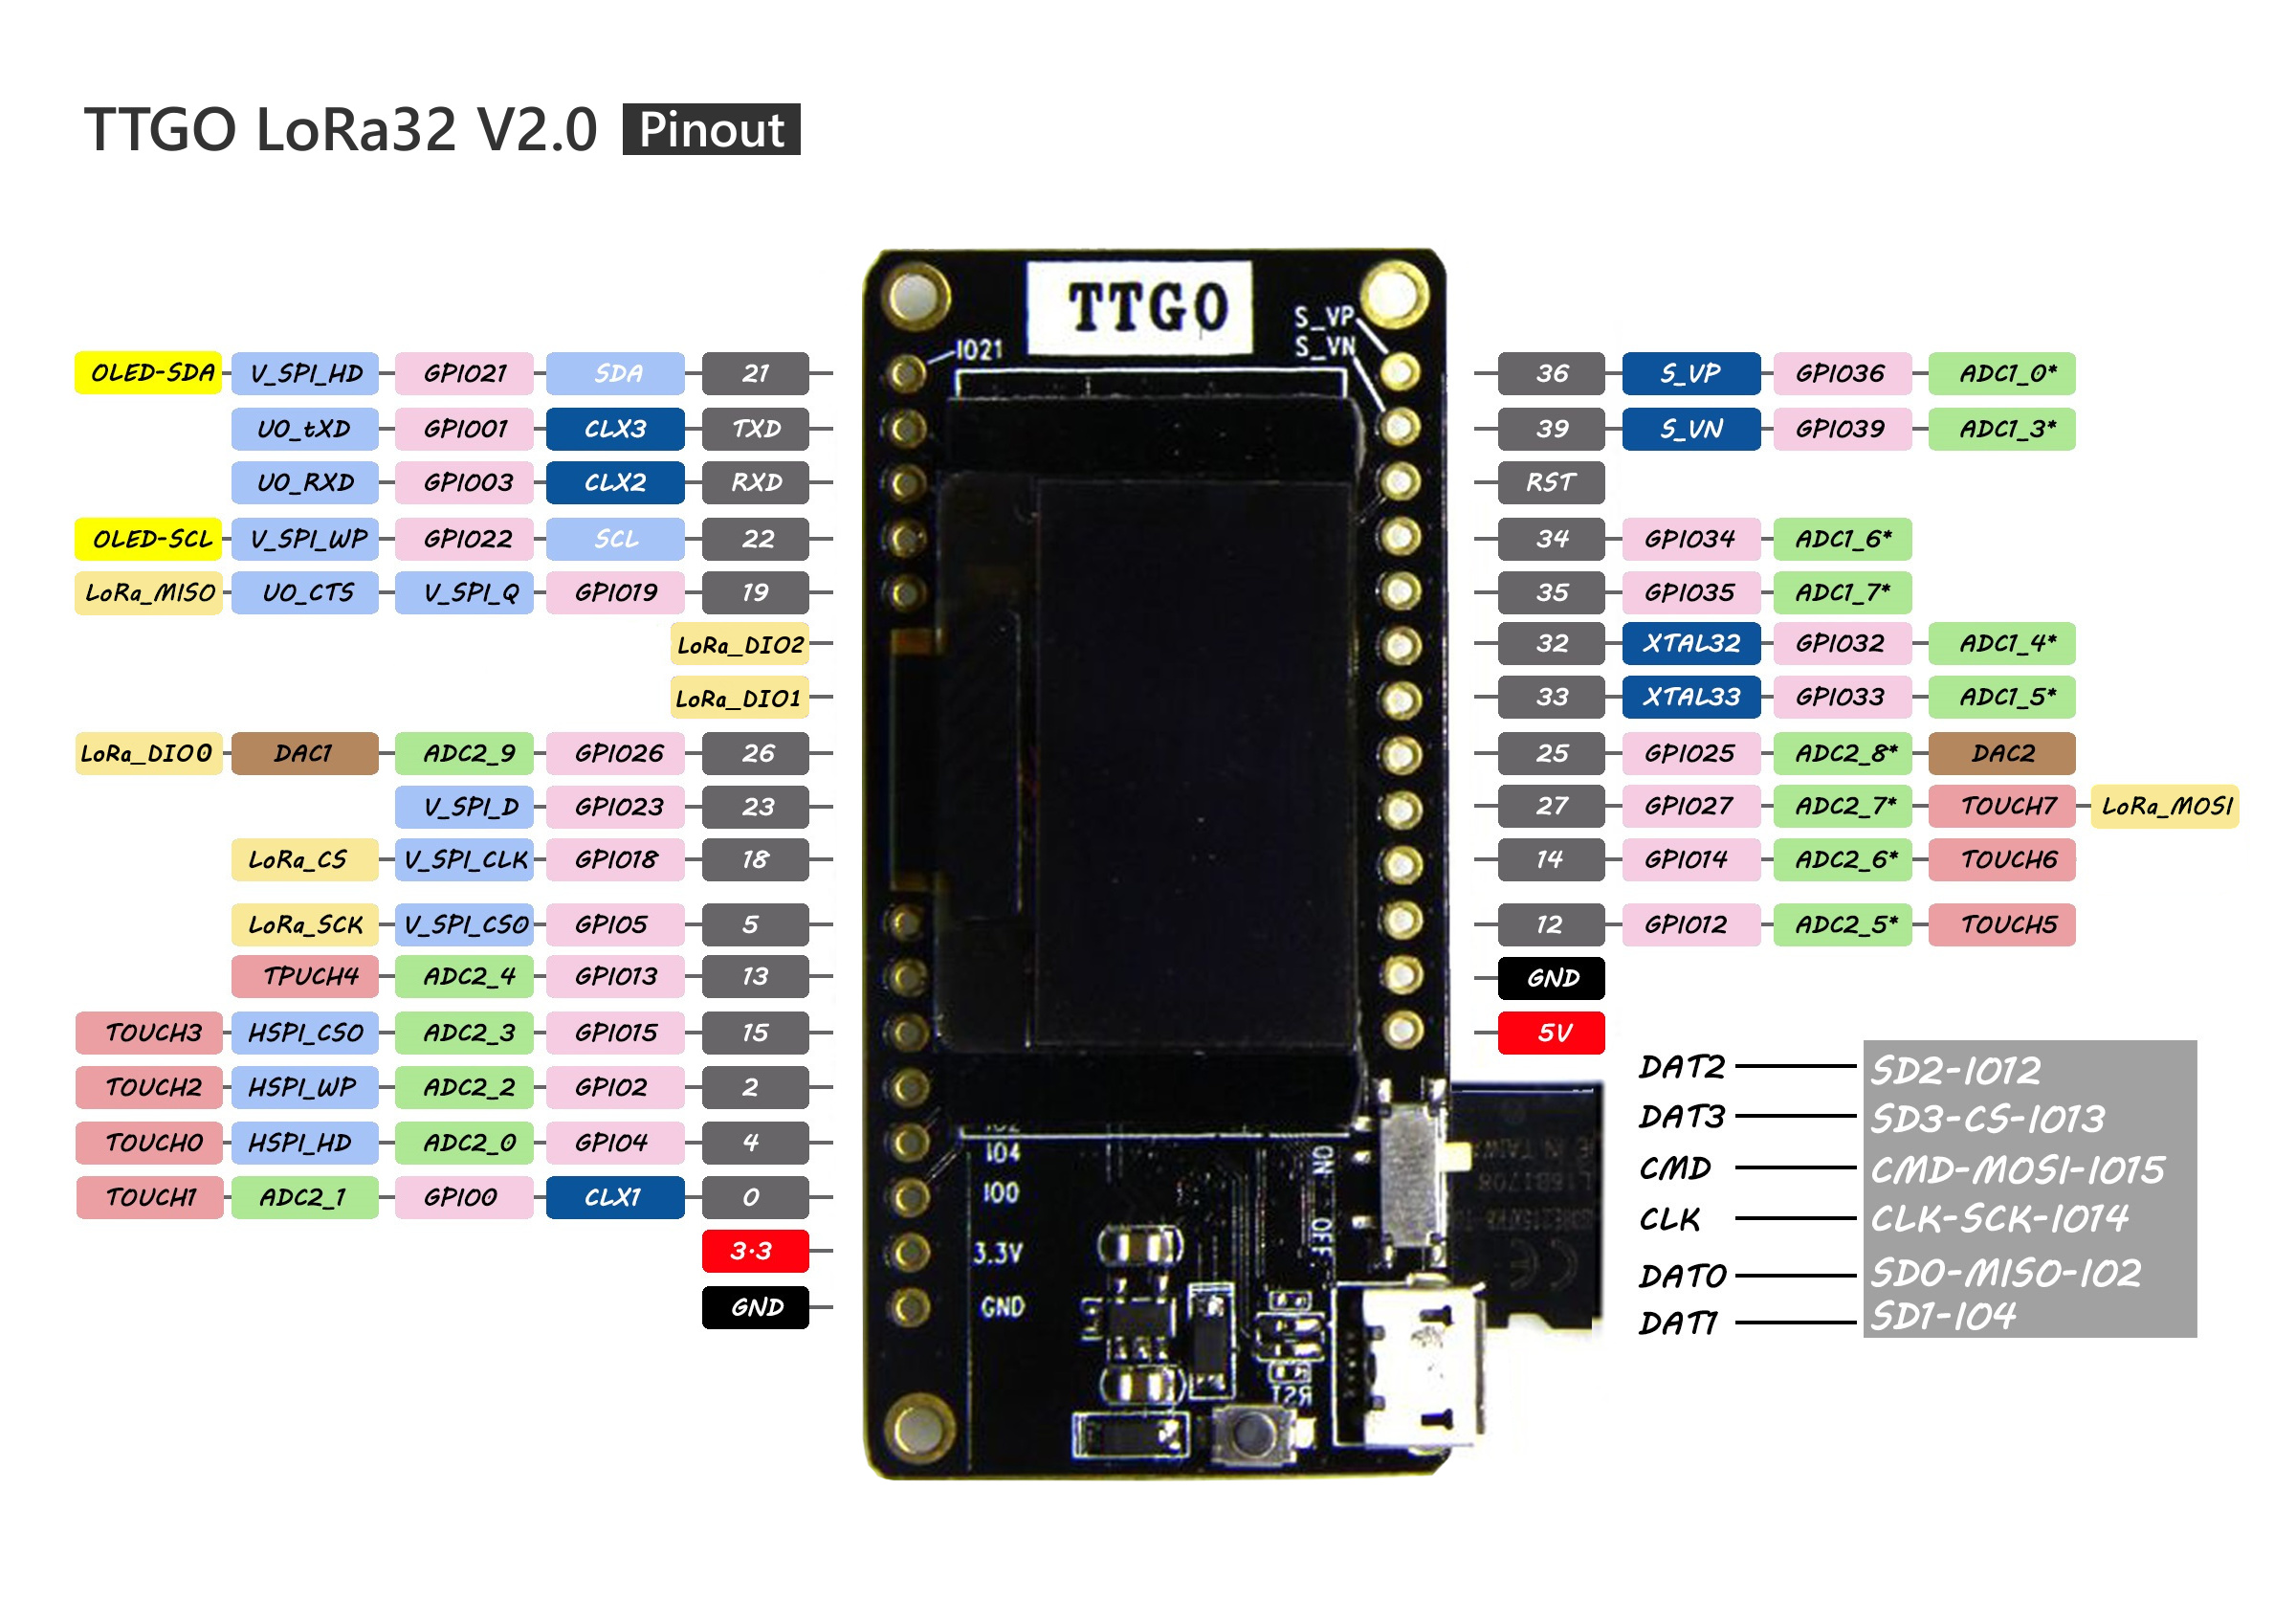 Big ESP32 + SX127x topic part 2 - End Devices (Nodes) - The Things